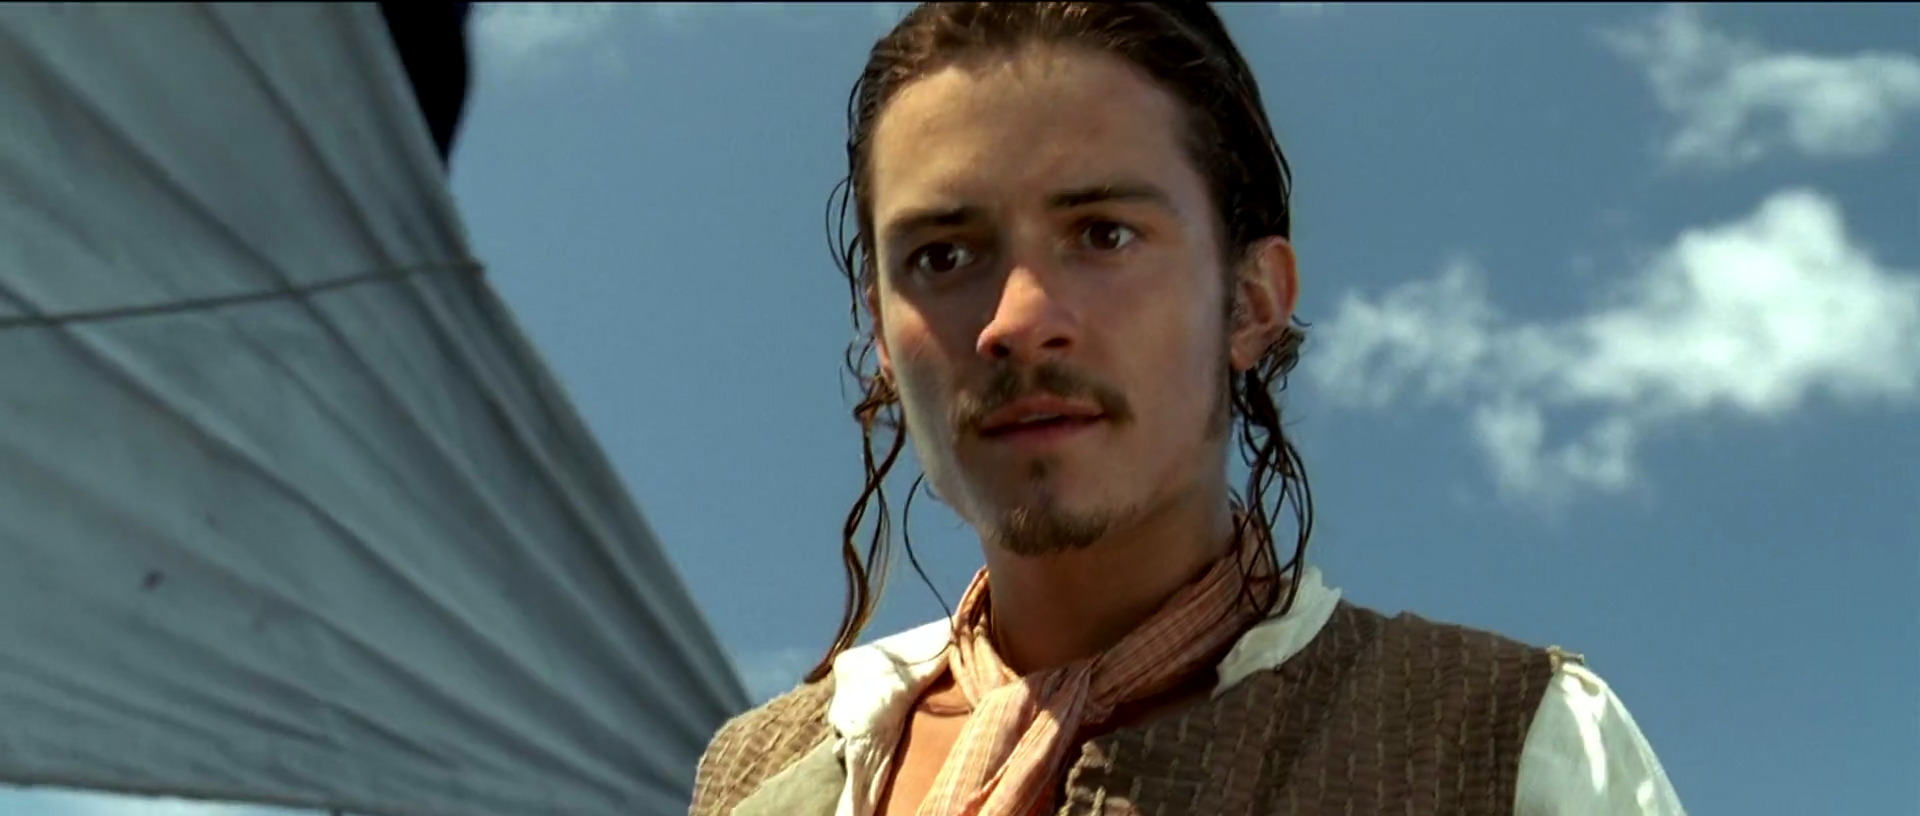 will-turner-personnage-pirate-caraibes-malediction-black-pearl-03